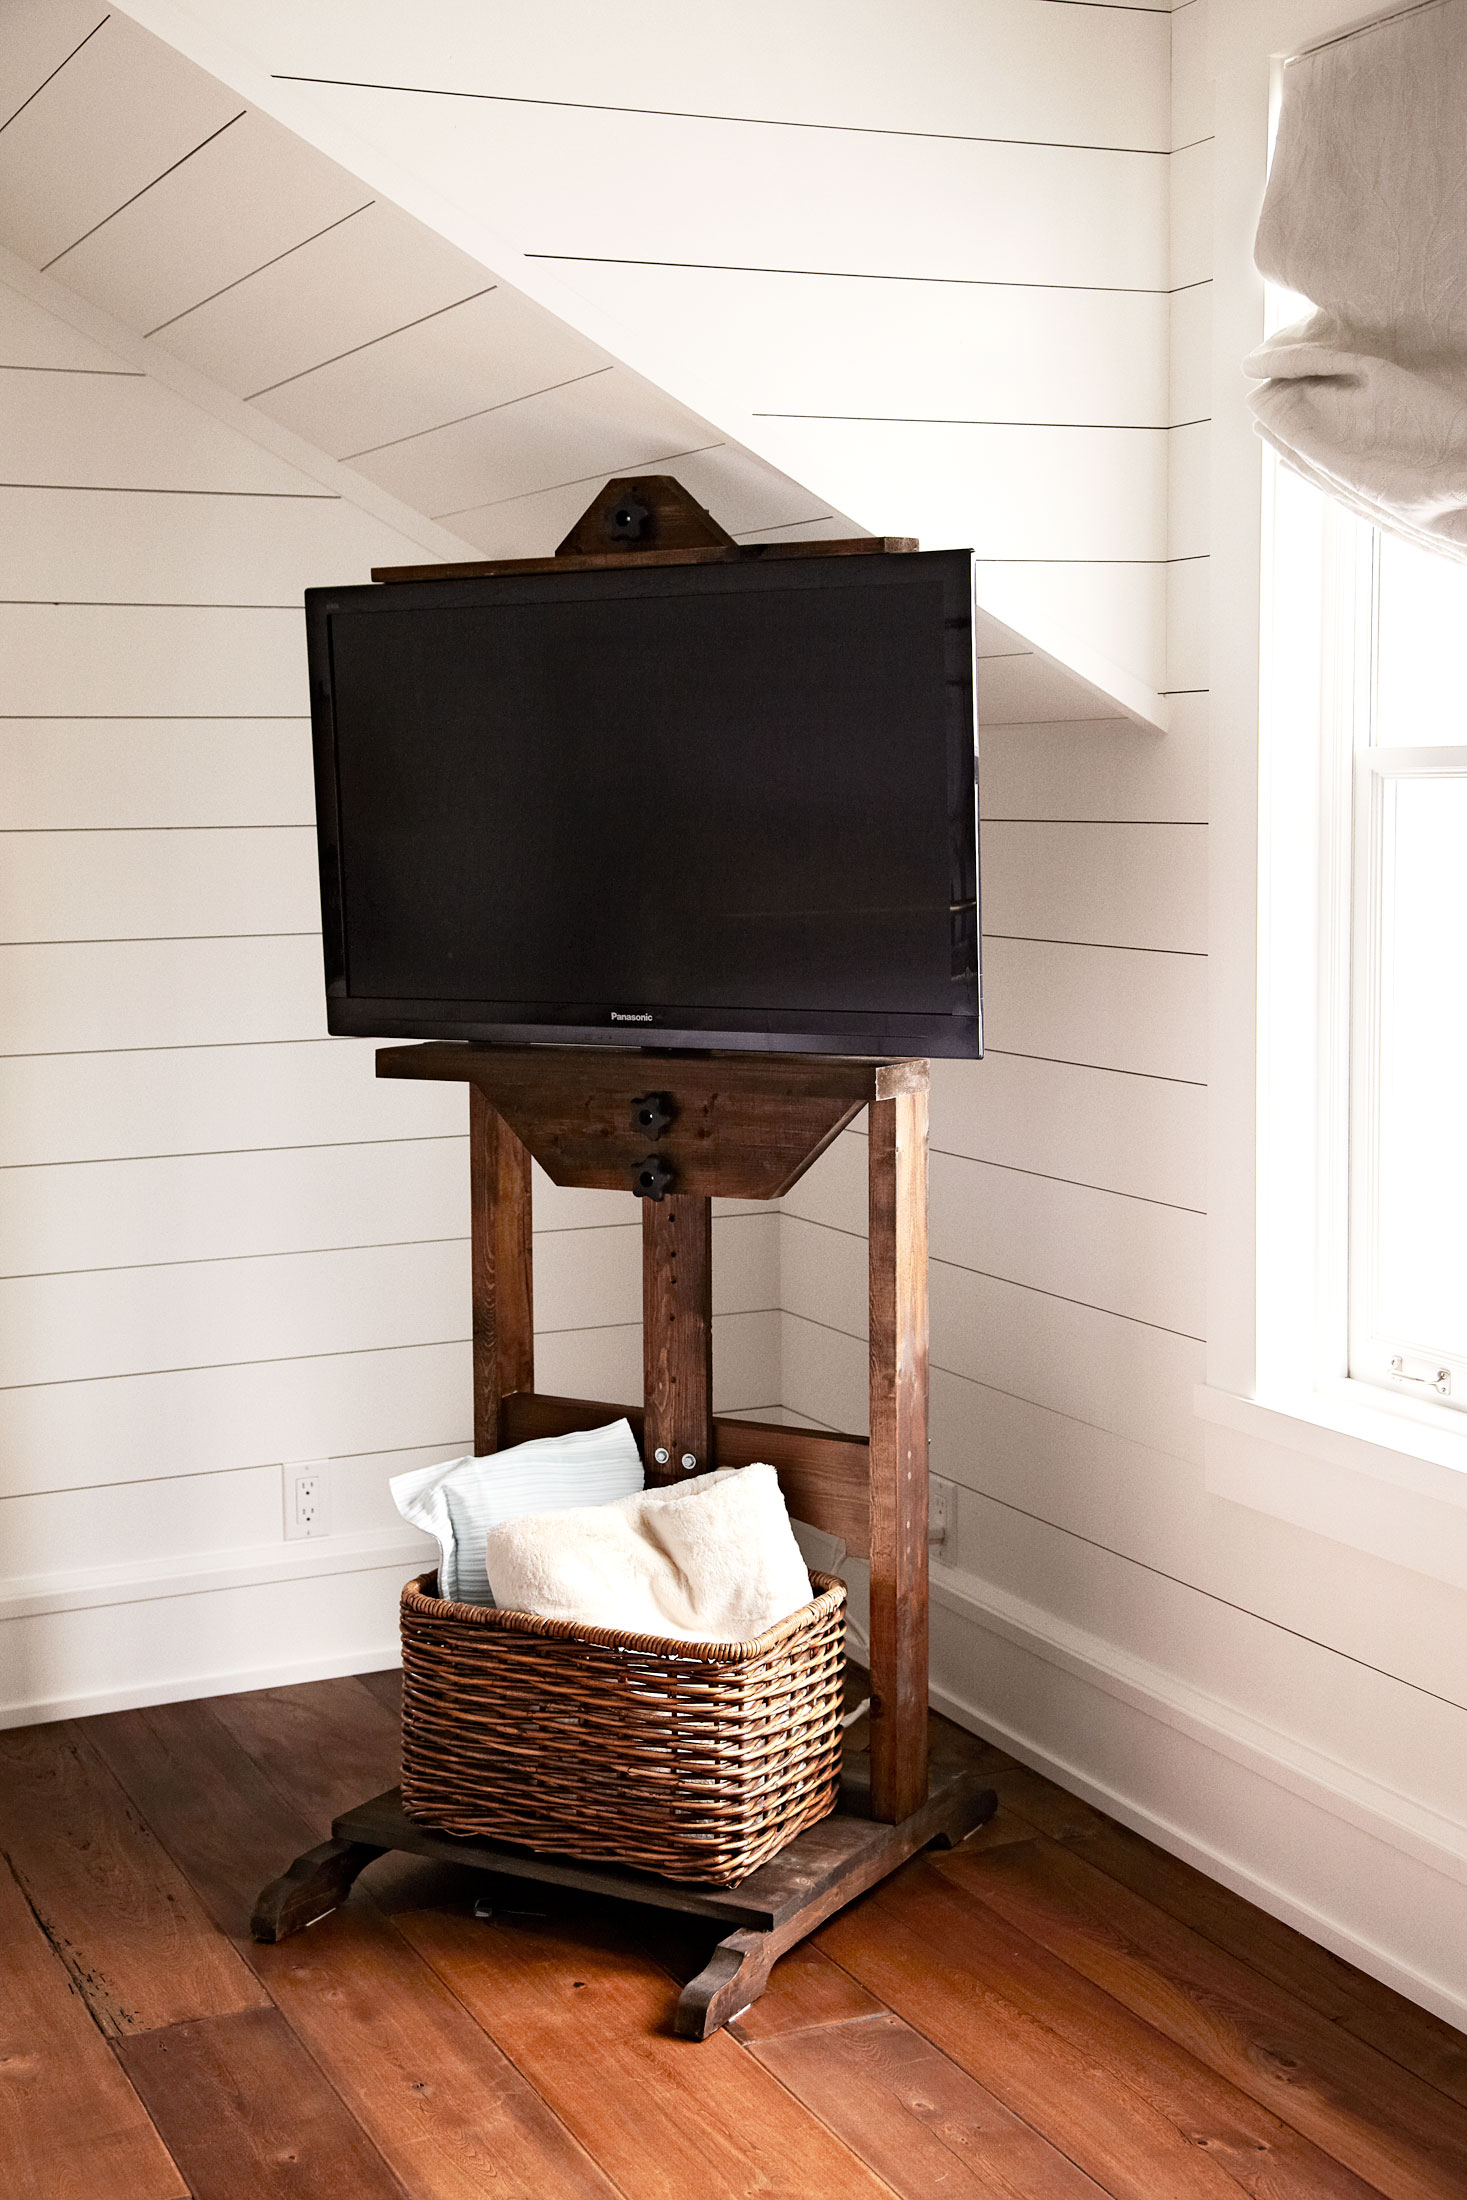 hidden-TV-cables-with-Restoration-Hardware-easel-and-wicker-basket